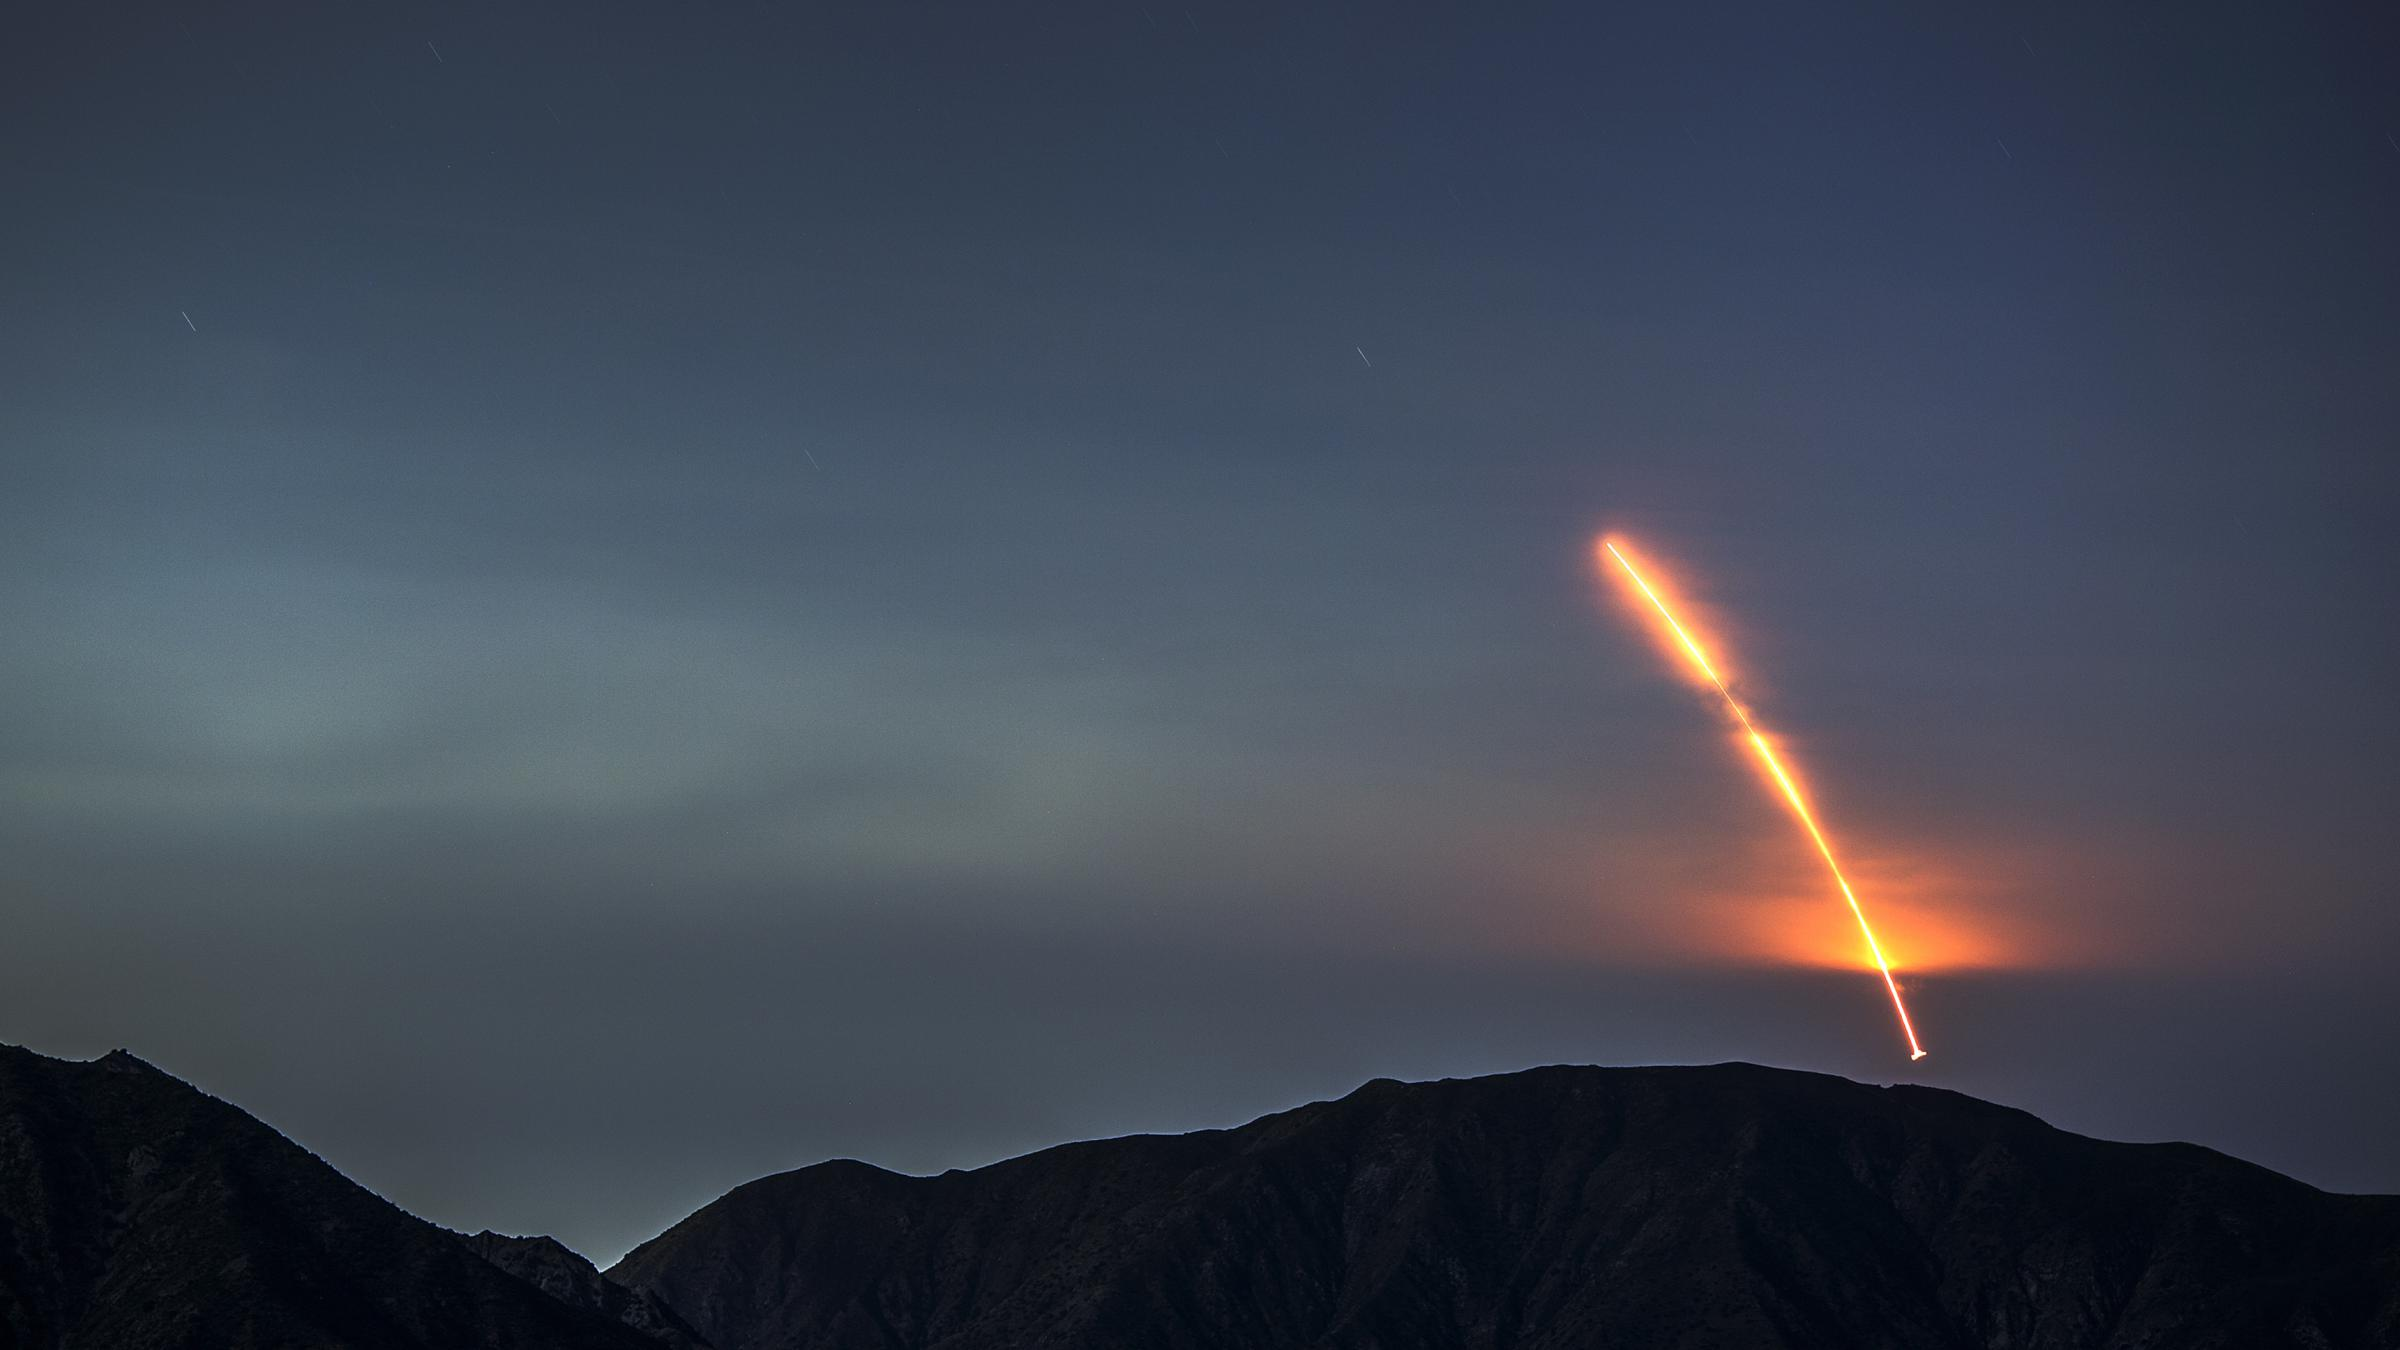 The Atlas V rocket carrying the Mars In Sight lander launches from Vandenberg Air Force Base as seen from the San Gabriel Mountains more than 100 miles away on Saturday morning. The In Sight probe is the first NASA lander designed entirely to study the